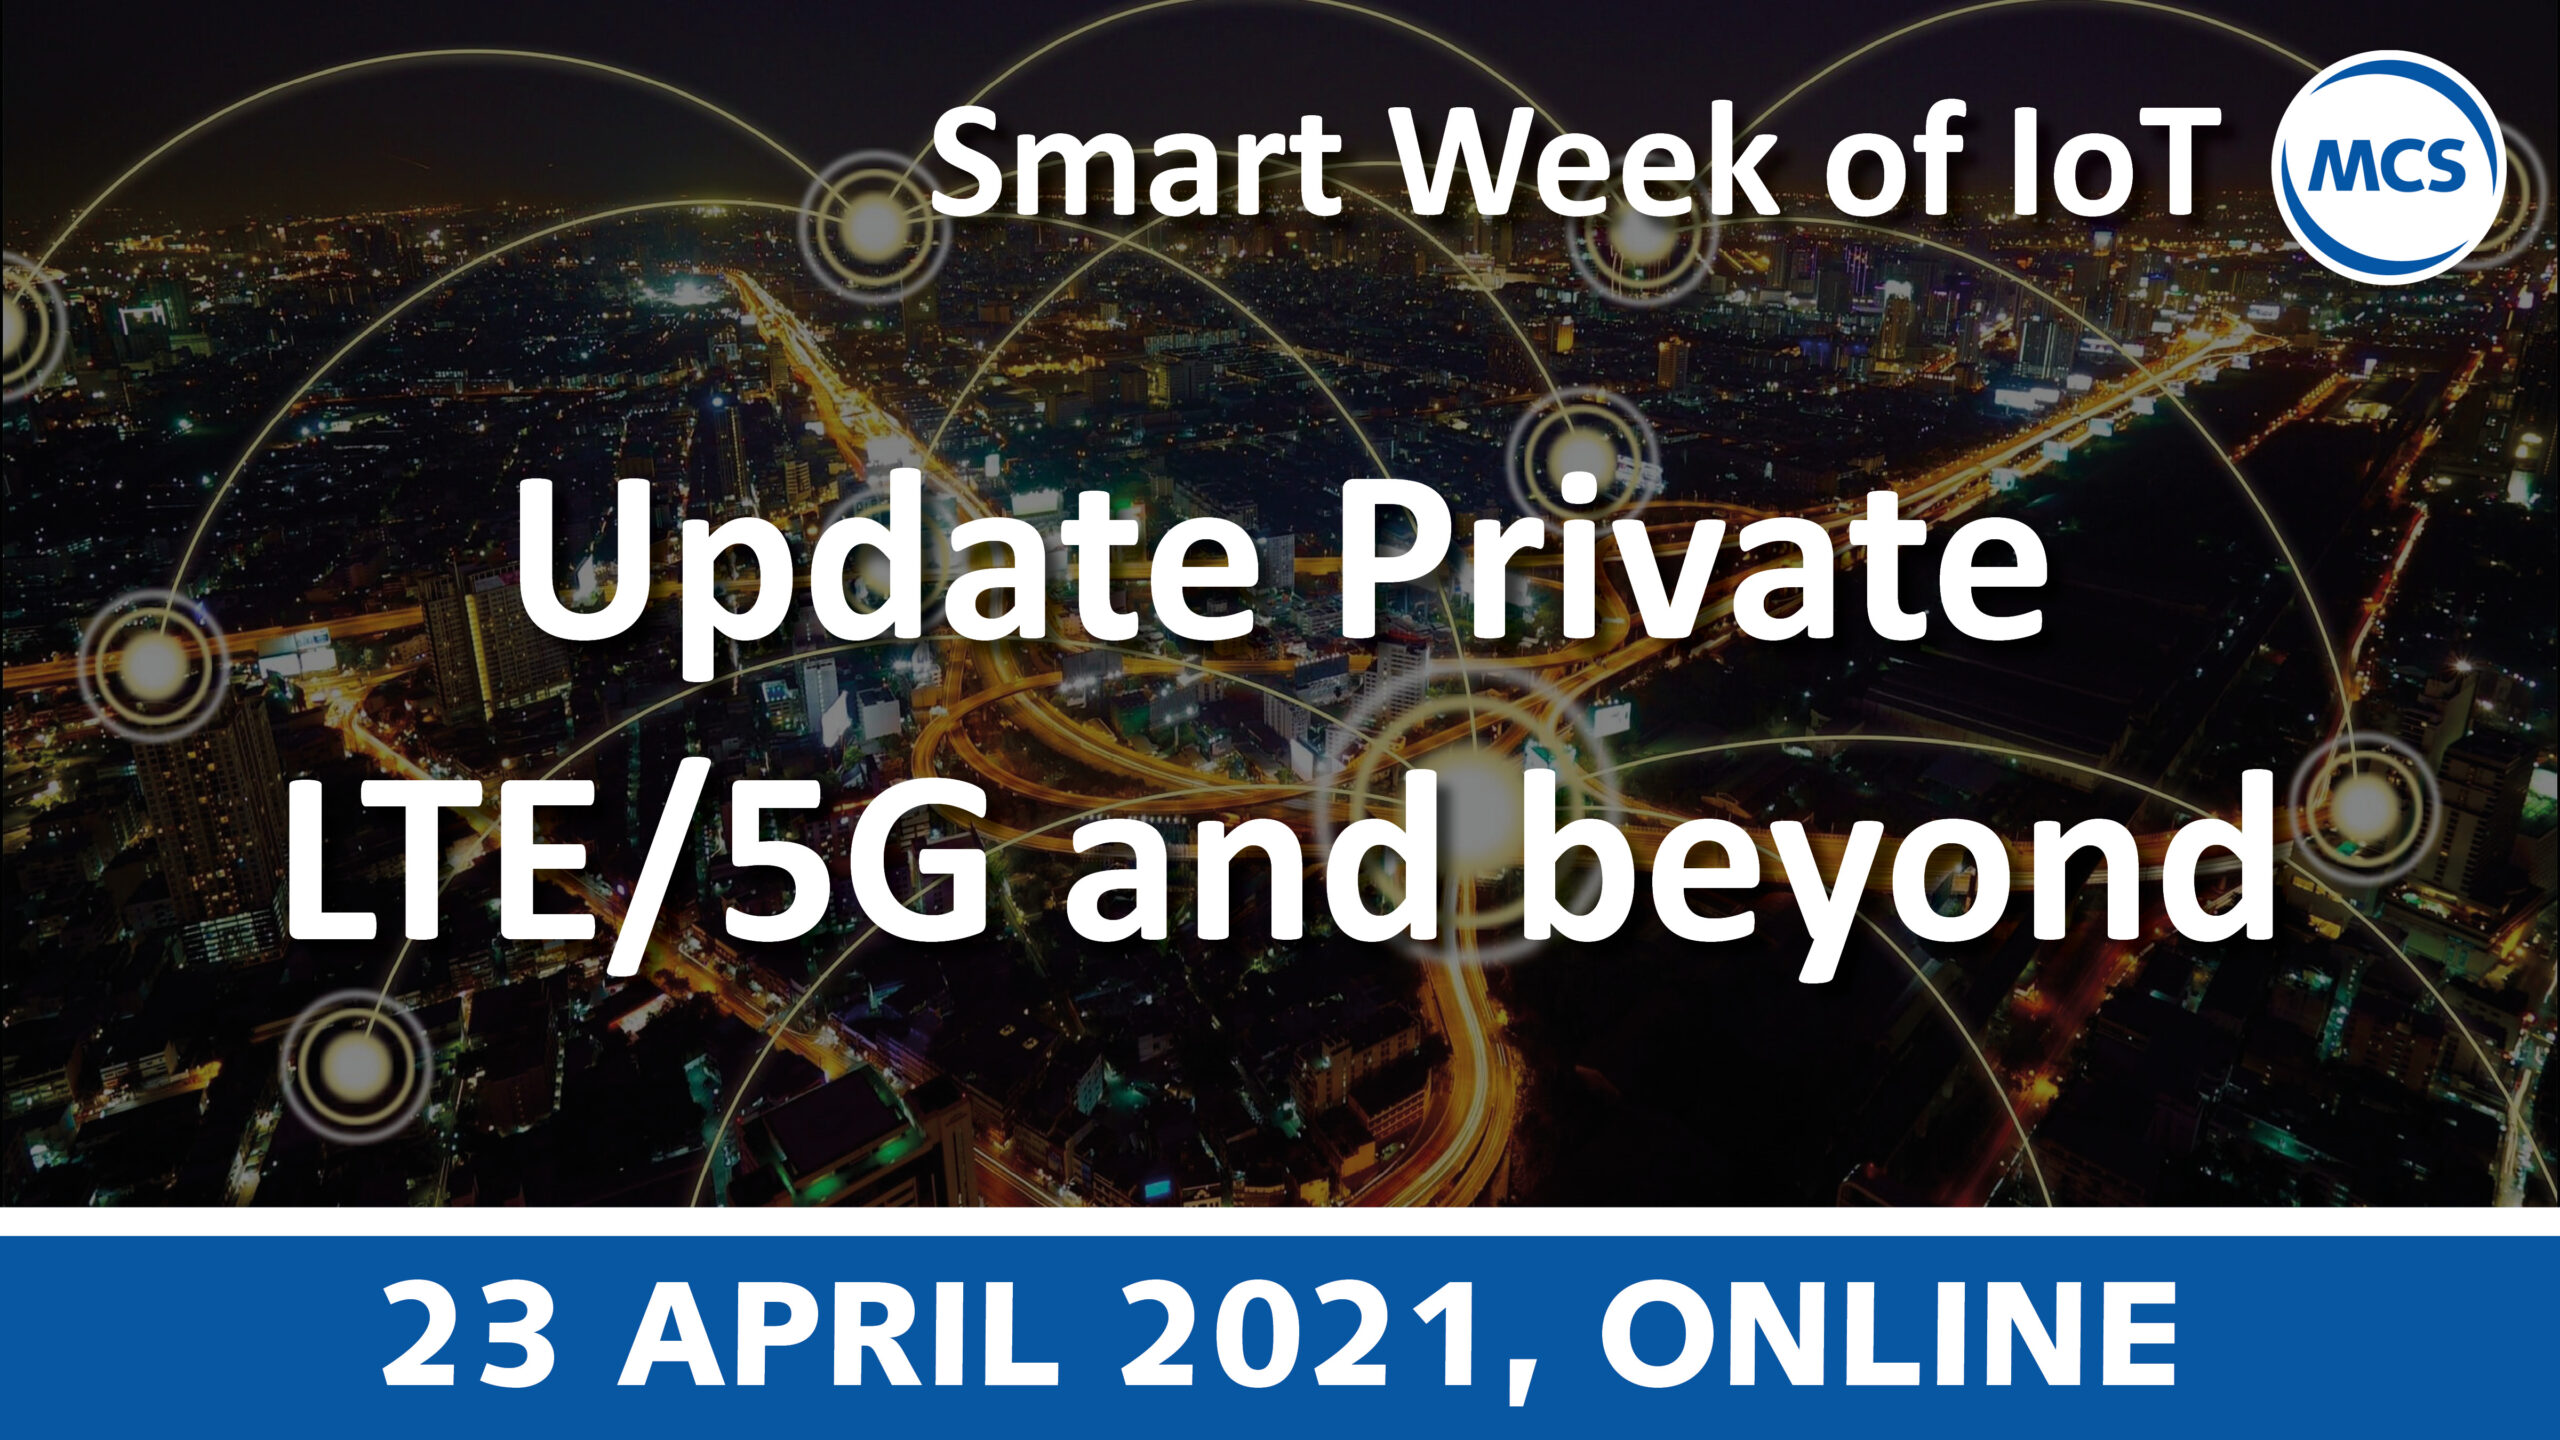 Update Private LTE/5G and beyond – Smart Week of IoT   23 april 2021   Pushing the limits of communication technology   MCS